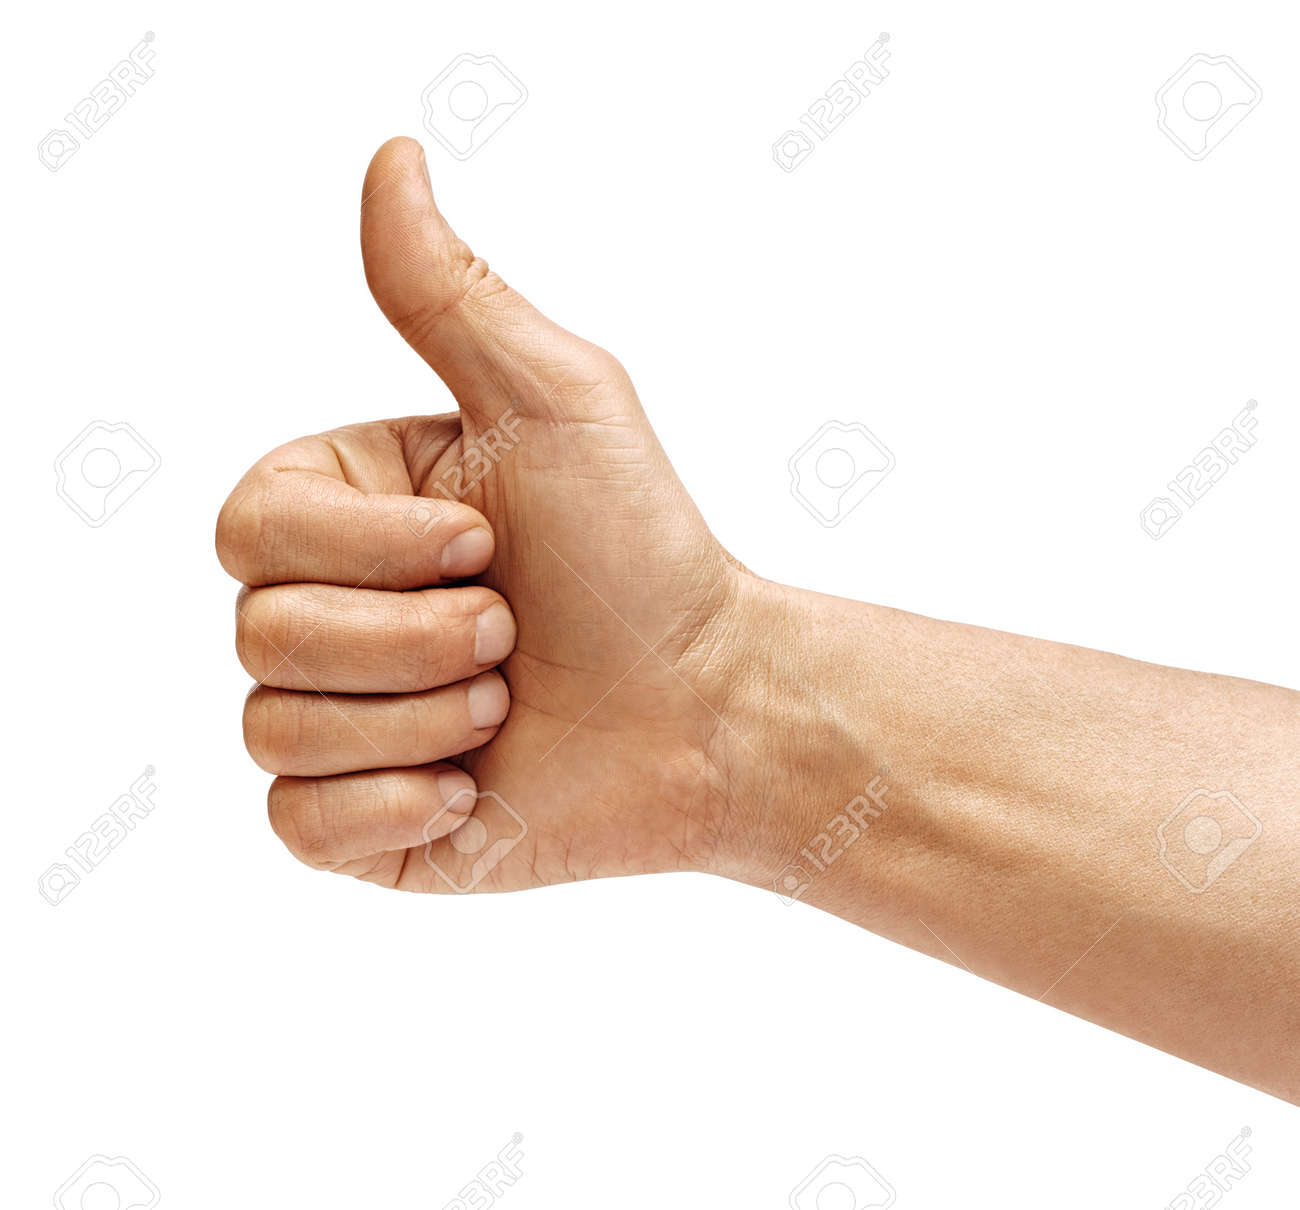 Man's hand showing thumb up - like sign, isolated on white background. Close up. Positive concept. High resolution product. - 123395964